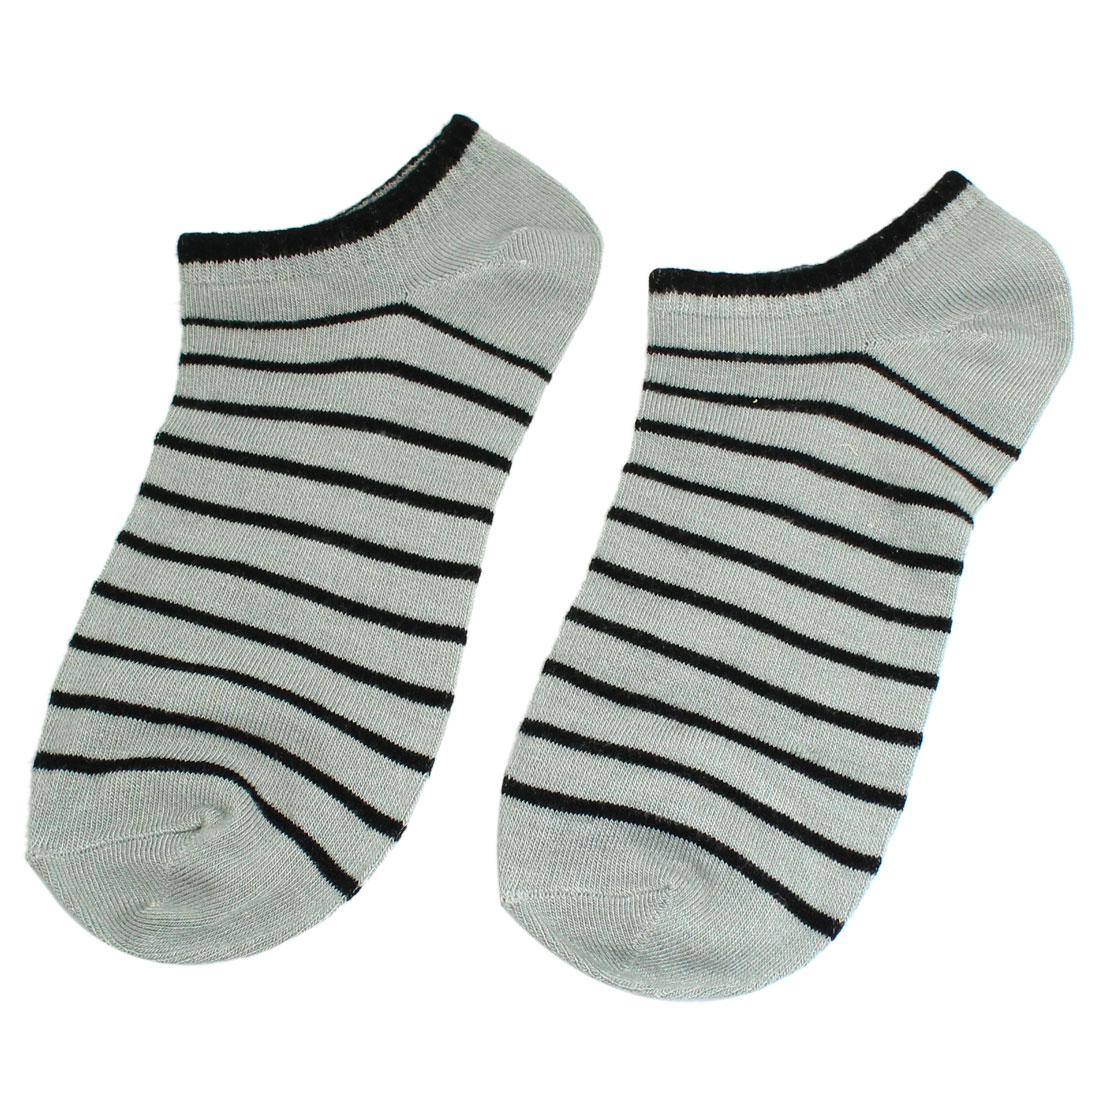 Pair Striped Pattern Elastic Ankle Low Cut Sports Socks Black Light Gray for Lady Man